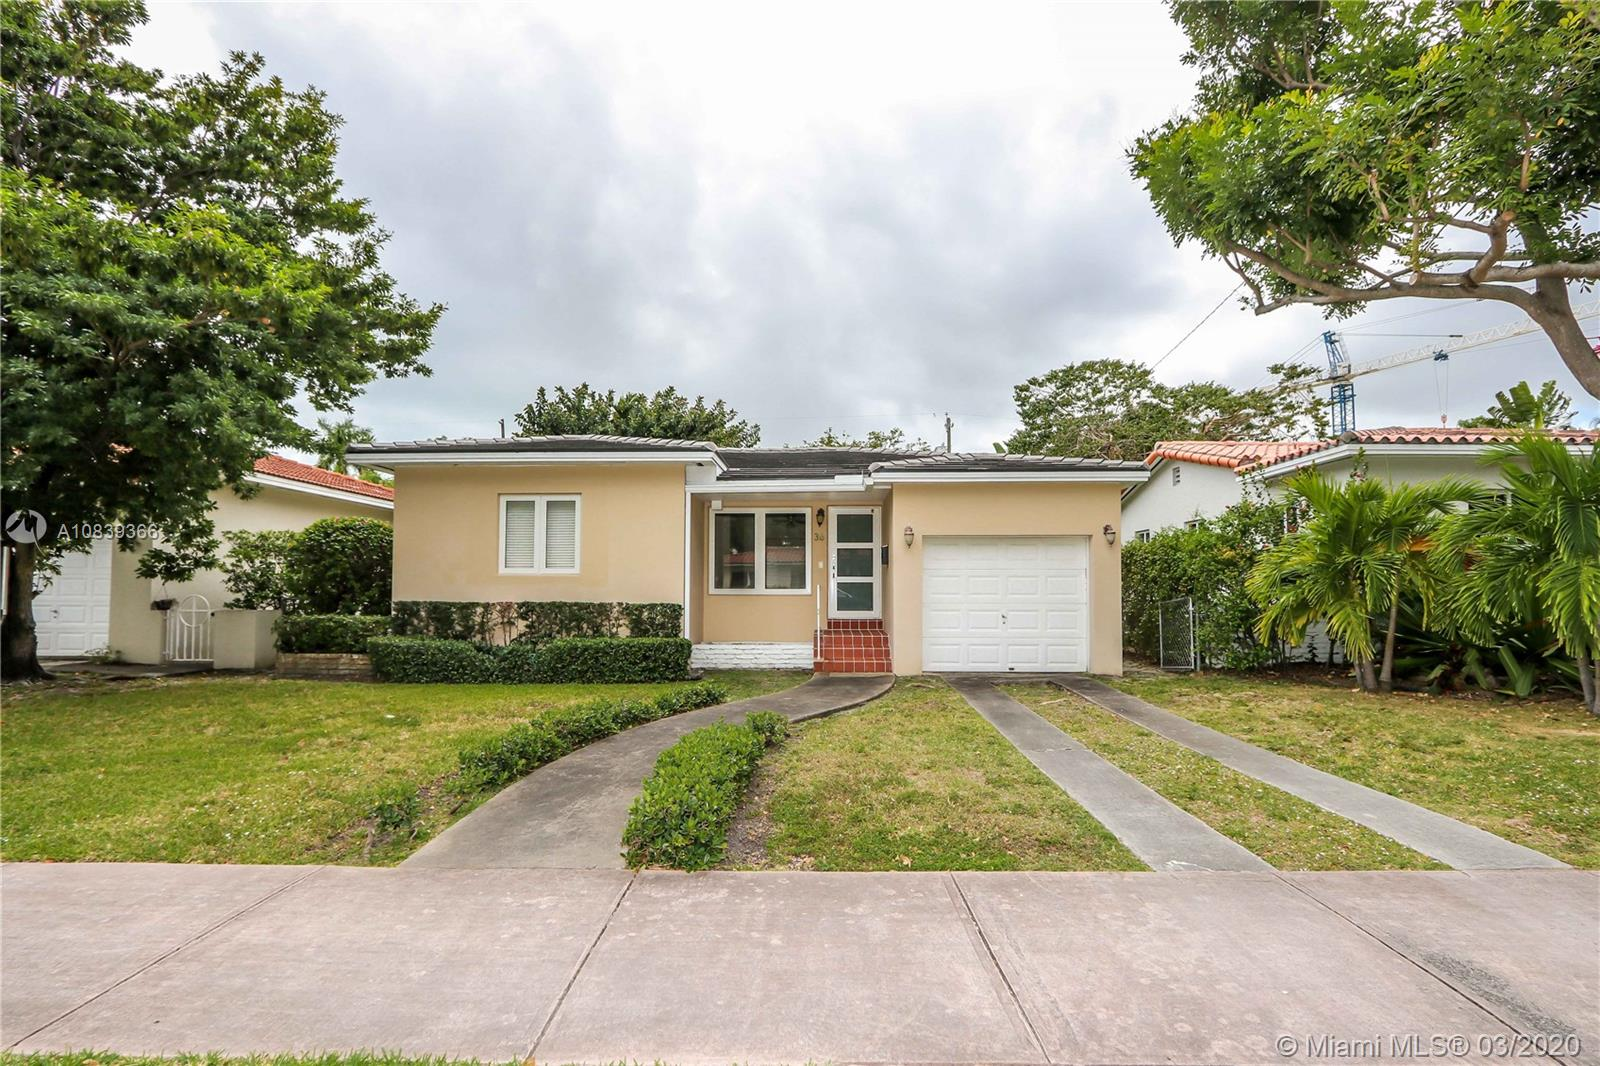 36 Sevilla Ave, Coral Gables, Florida 33134, 2 Bedrooms Bedrooms, ,1 BathroomBathrooms,Residential,For Sale,36 Sevilla Ave,A10839366